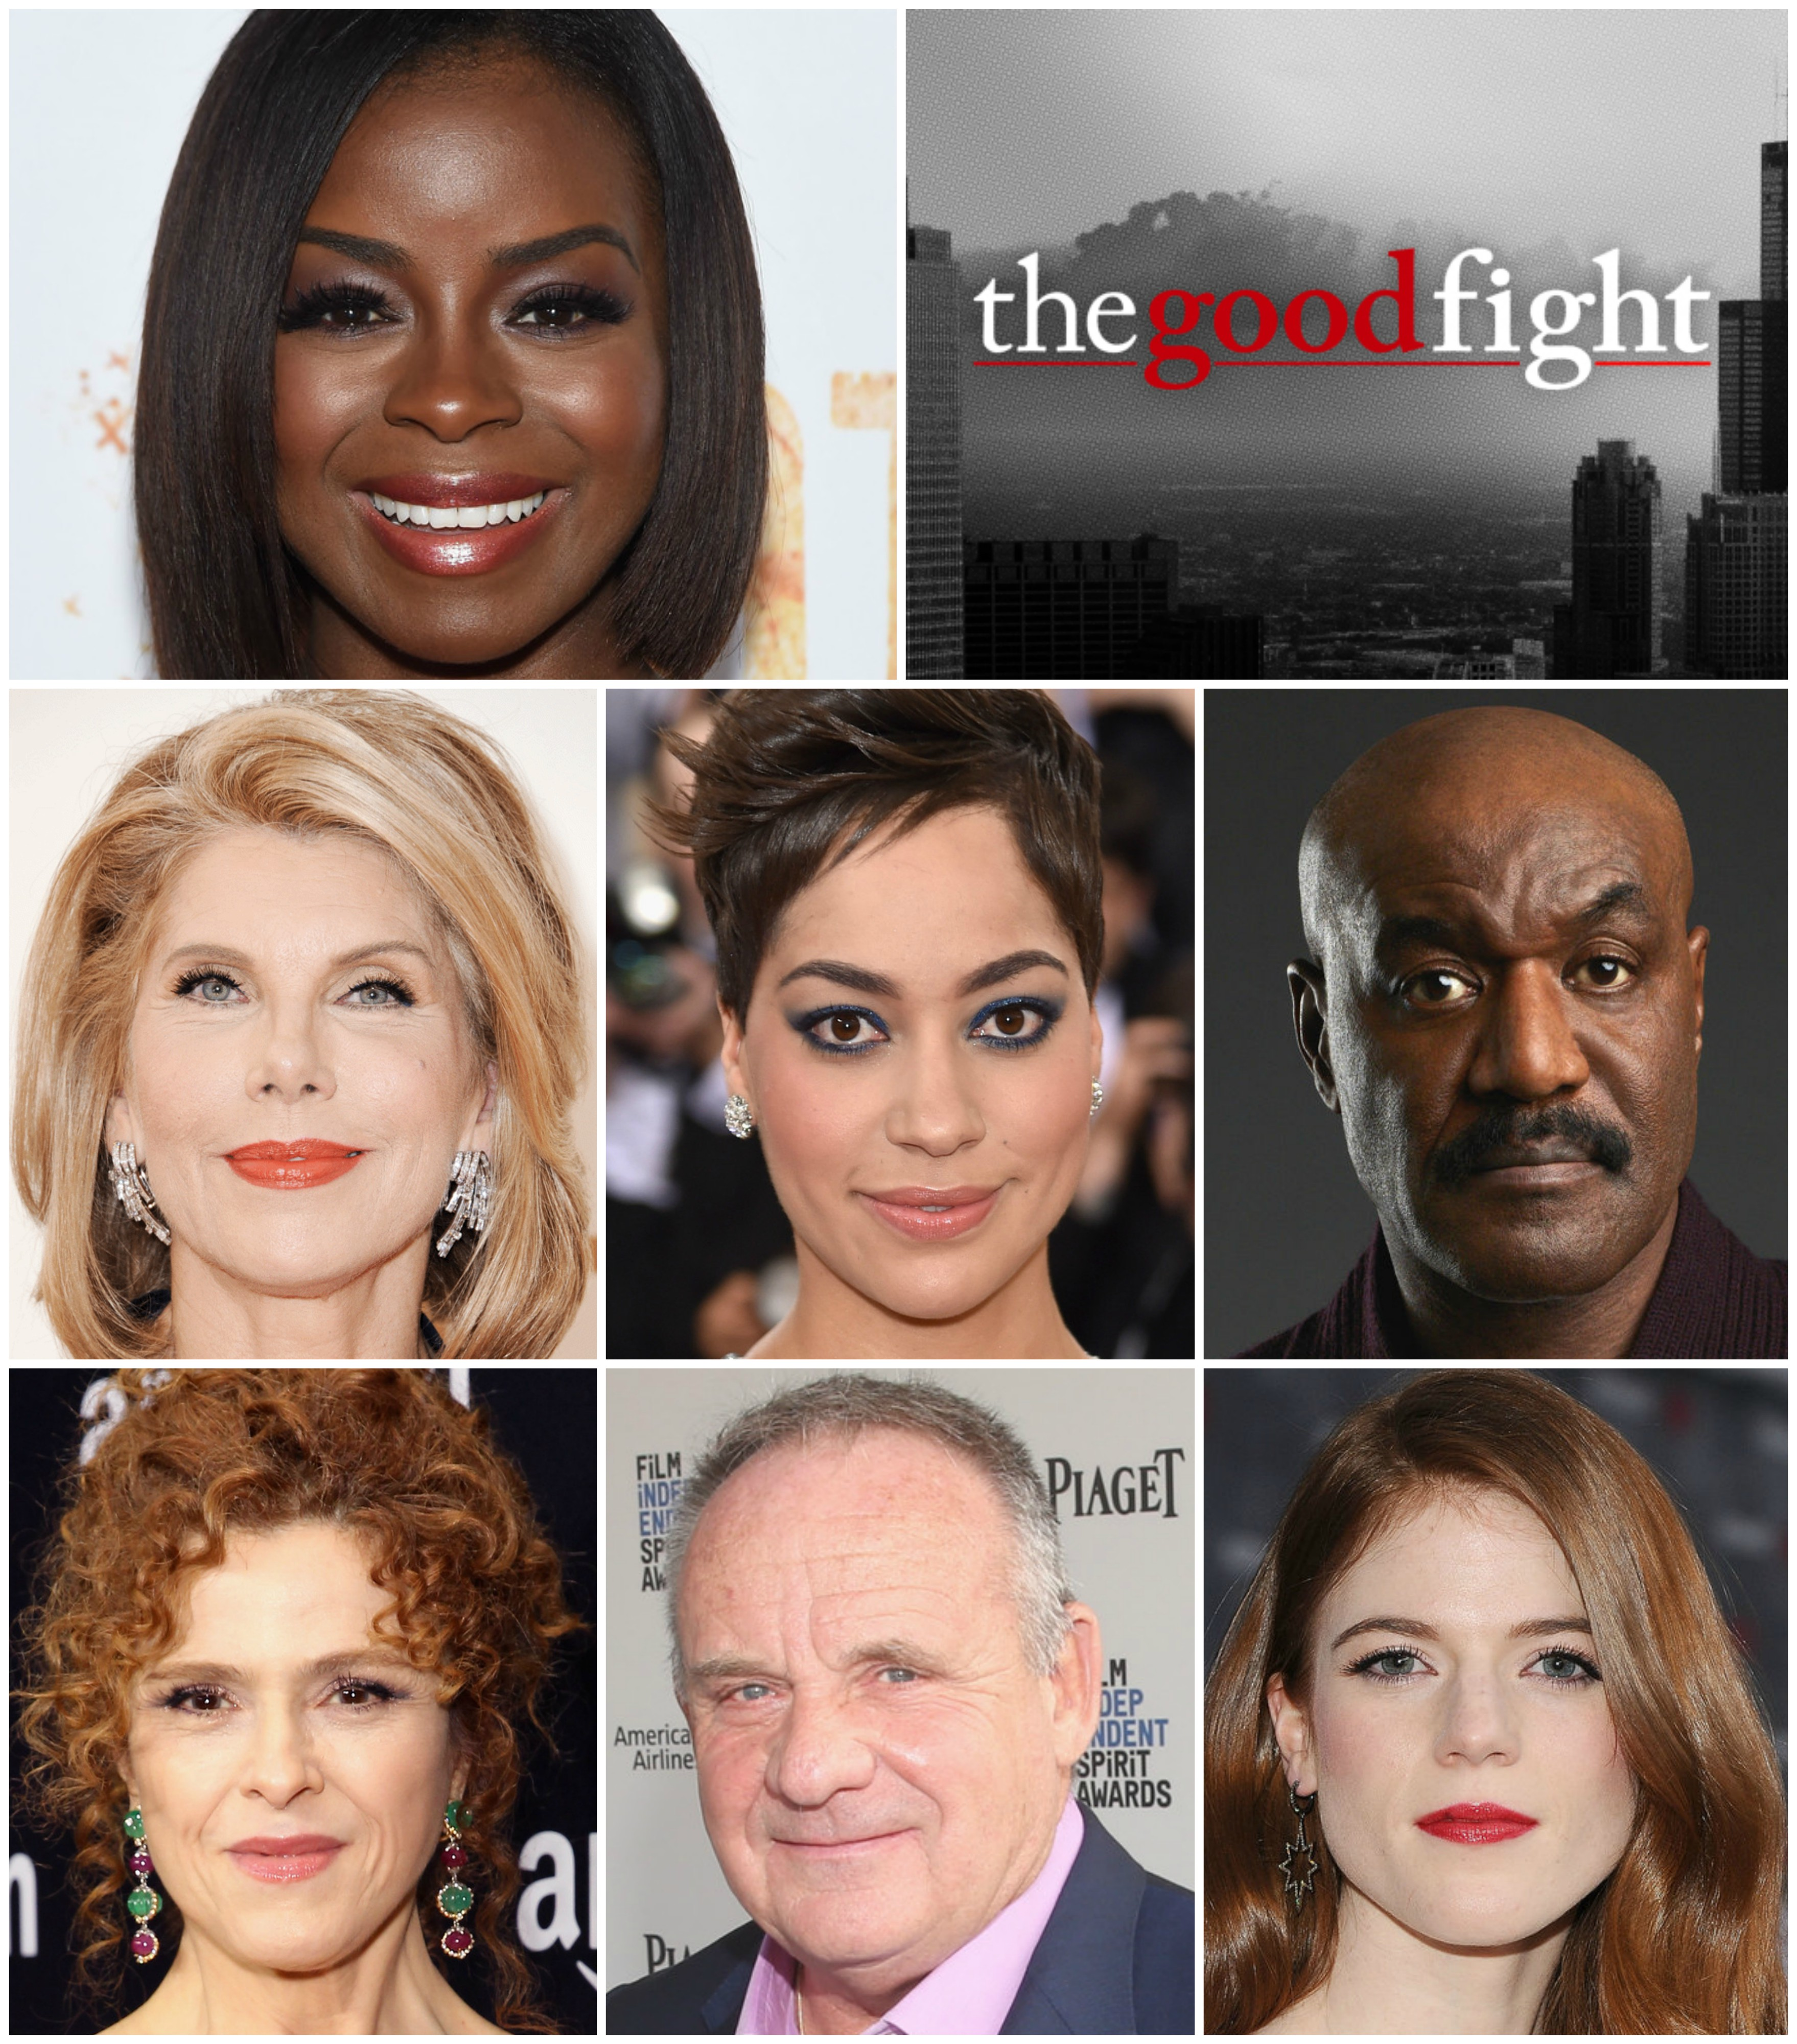 Erica Tazel Joins Cast Of The Good Fight Spinoff Of The Good Wife Blackfilm Com Black Movies Television And Theatre News View all erica tazel tv (7 more). blackfilm